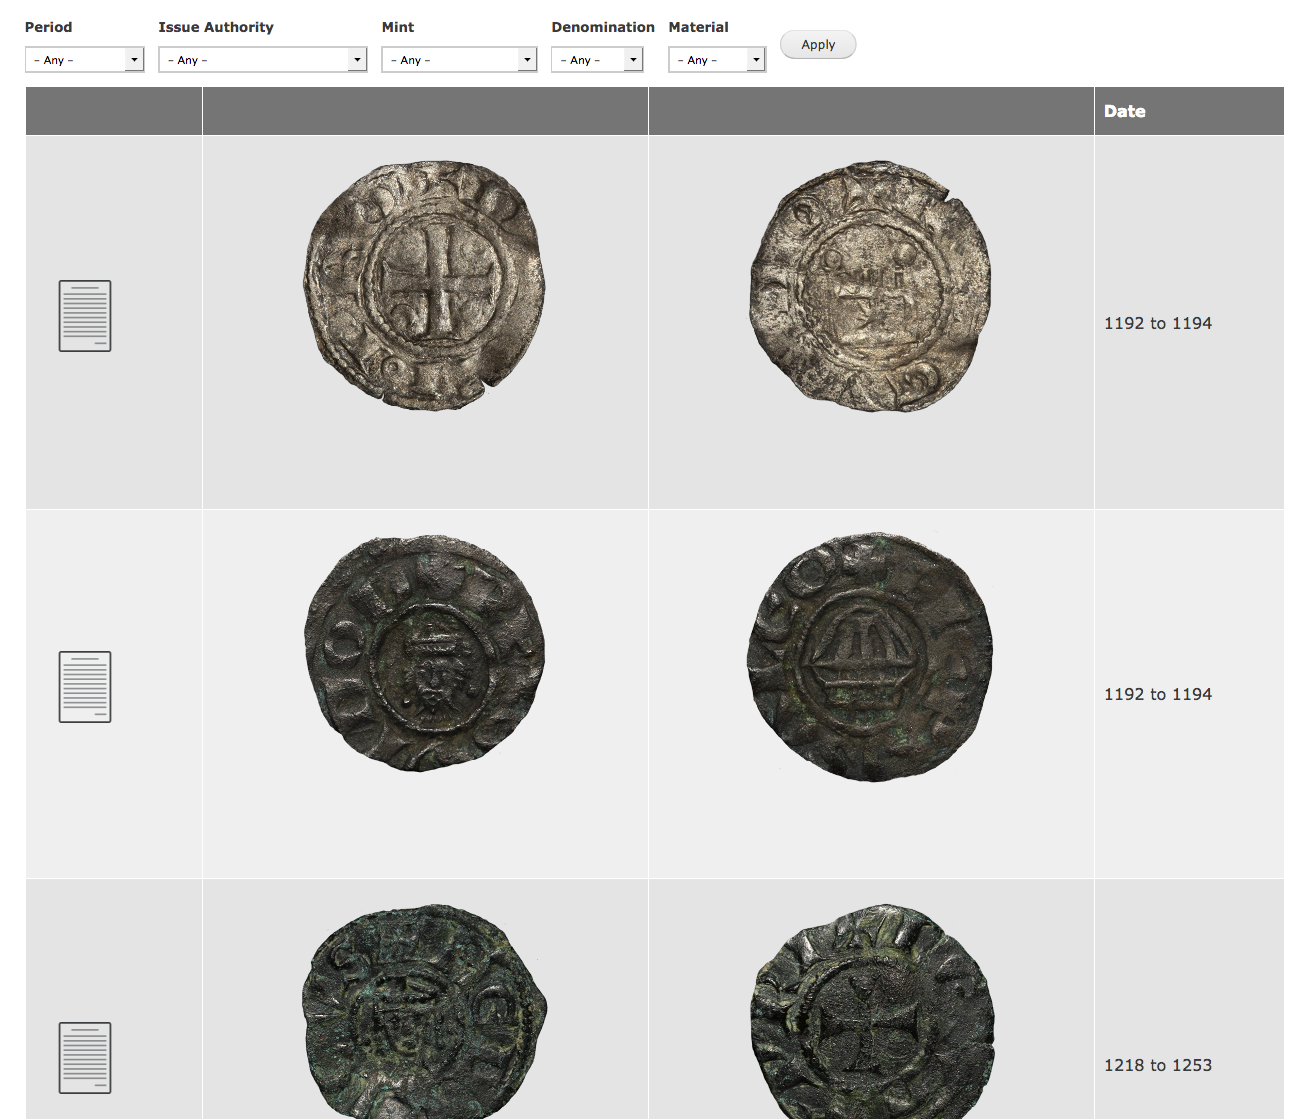 The visual collection of medieval coins from the Cypriot Medieval Coins: History and Culture Library